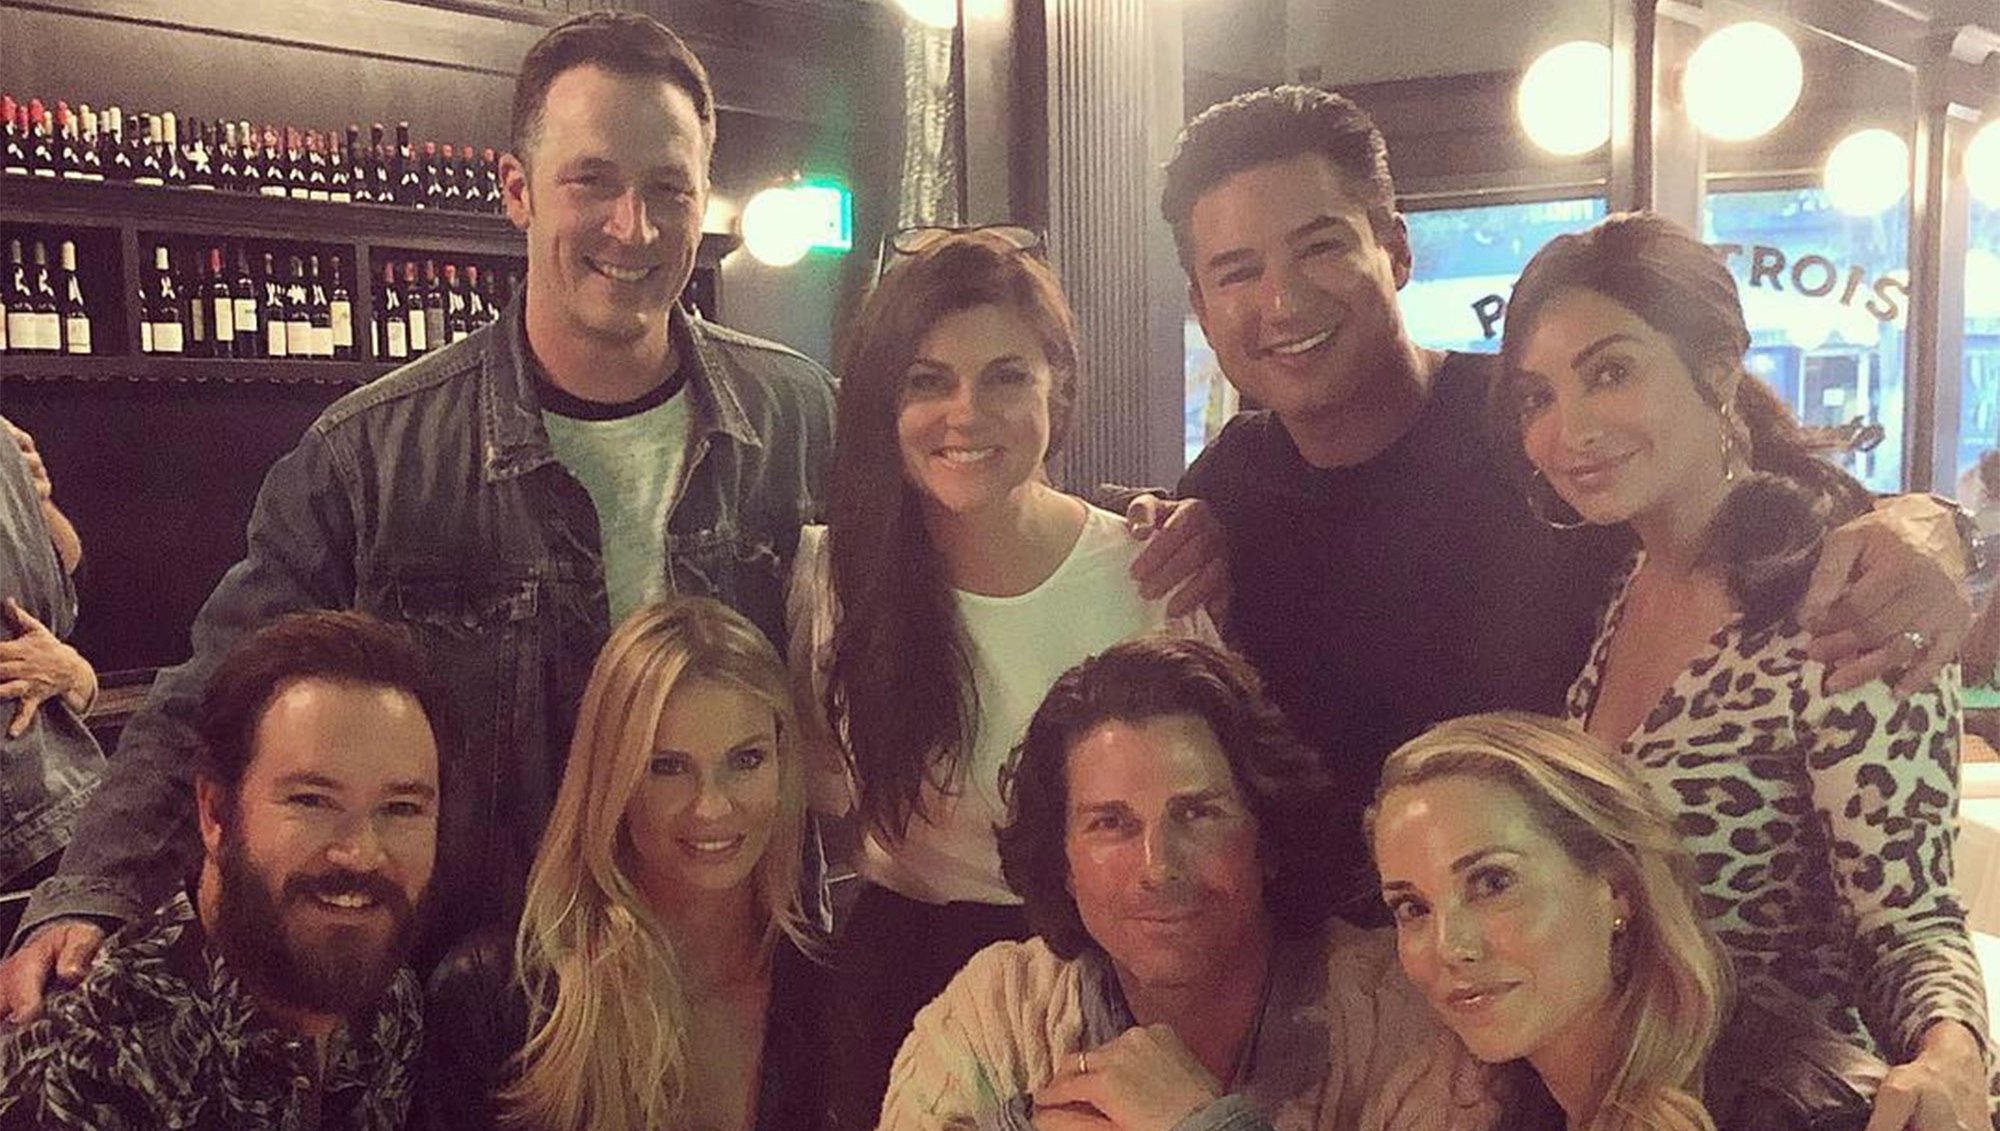 Saved by the Bell Costars Reunited Mark-Paul Gosselaar (Zach Morris), Mario Lopez (A.C. Slater), Tiffani Thiessen (Kelly Kapowski) and Elizabeth Berkley (Jessie Spano)